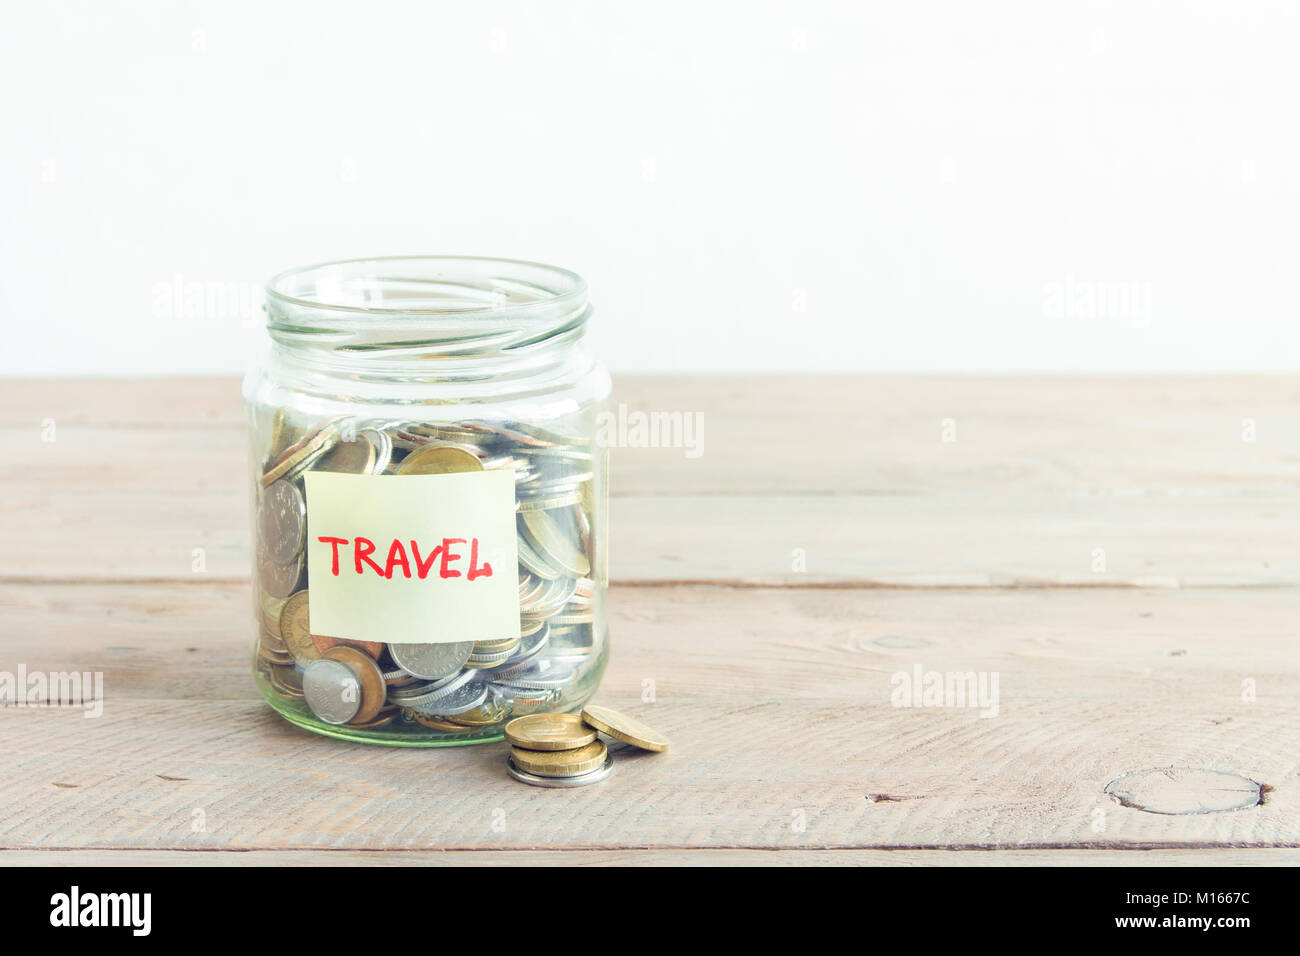 Coins in glass jar with red heart and Travel label. Money savings, plans and dreams concept, copy space. Stock Photo